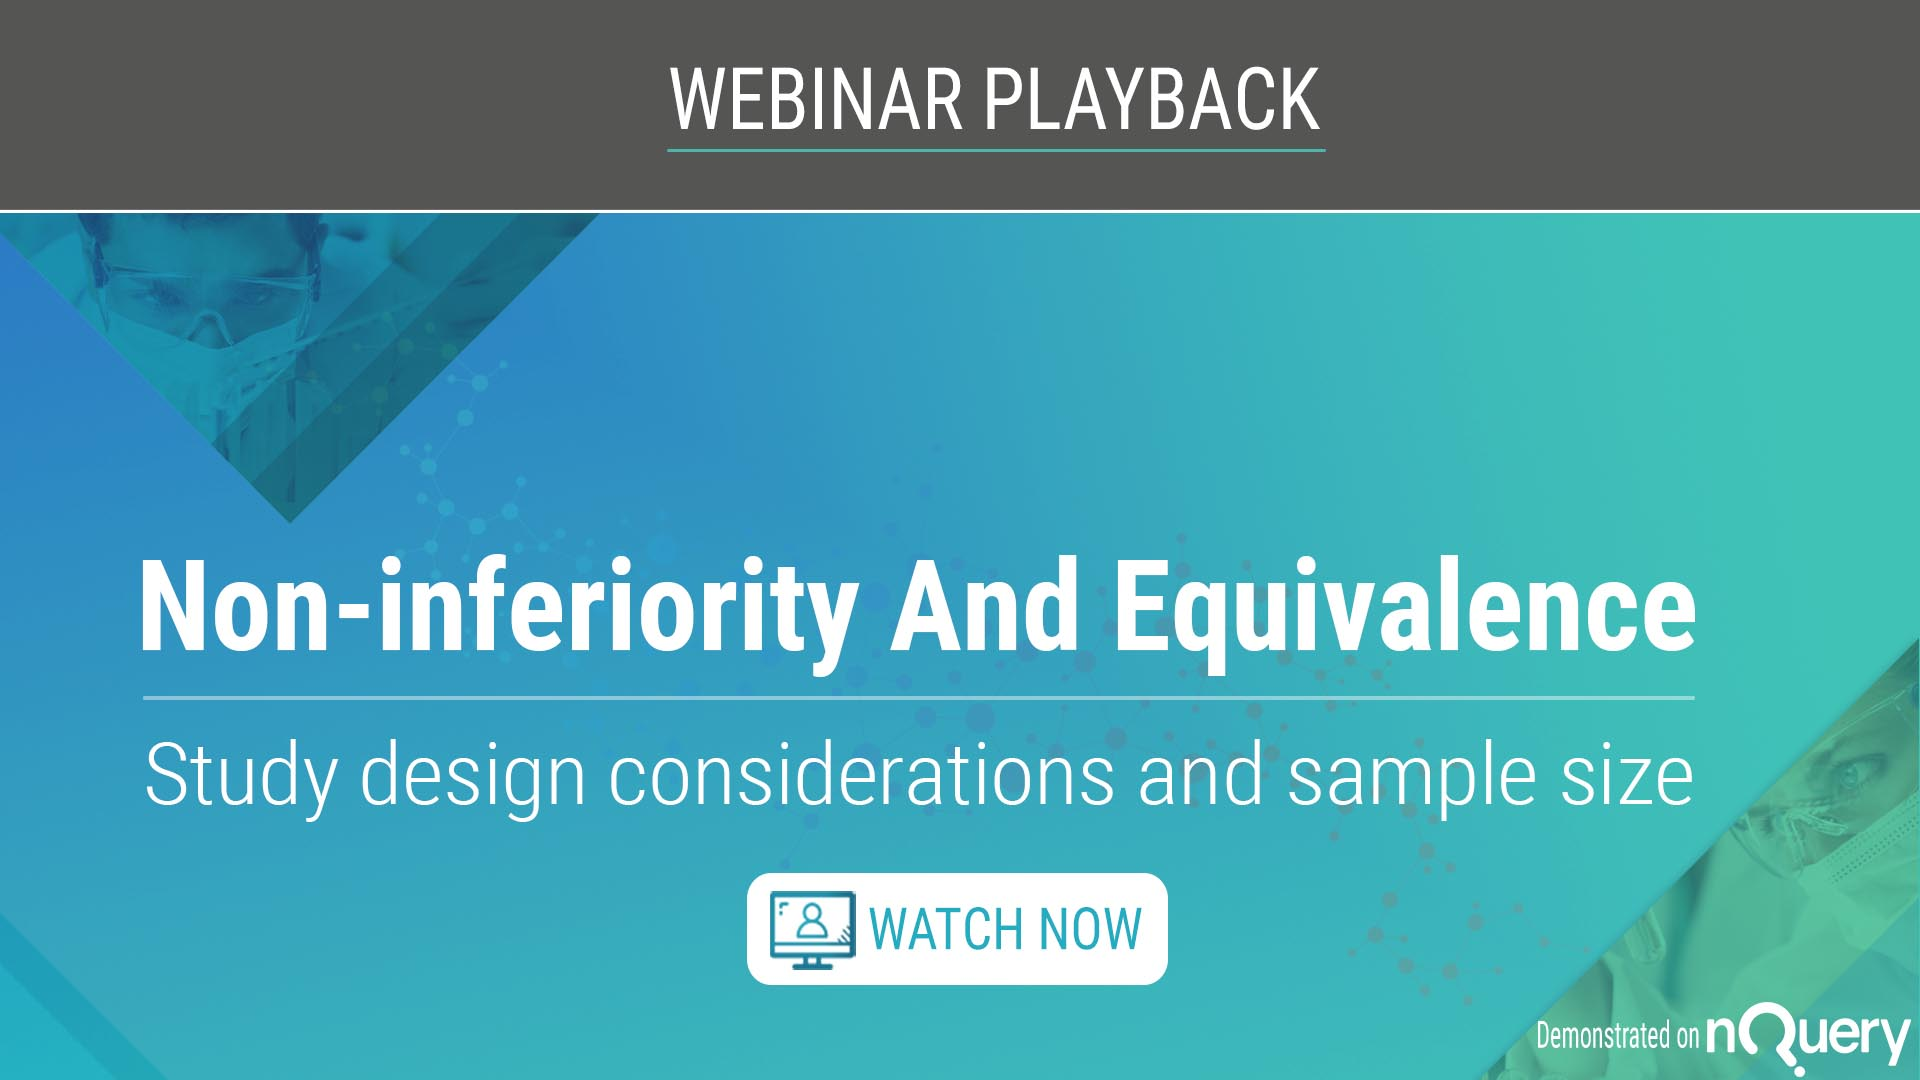 Non-inferiority-And-Equivalence-study-design-webinar-playback